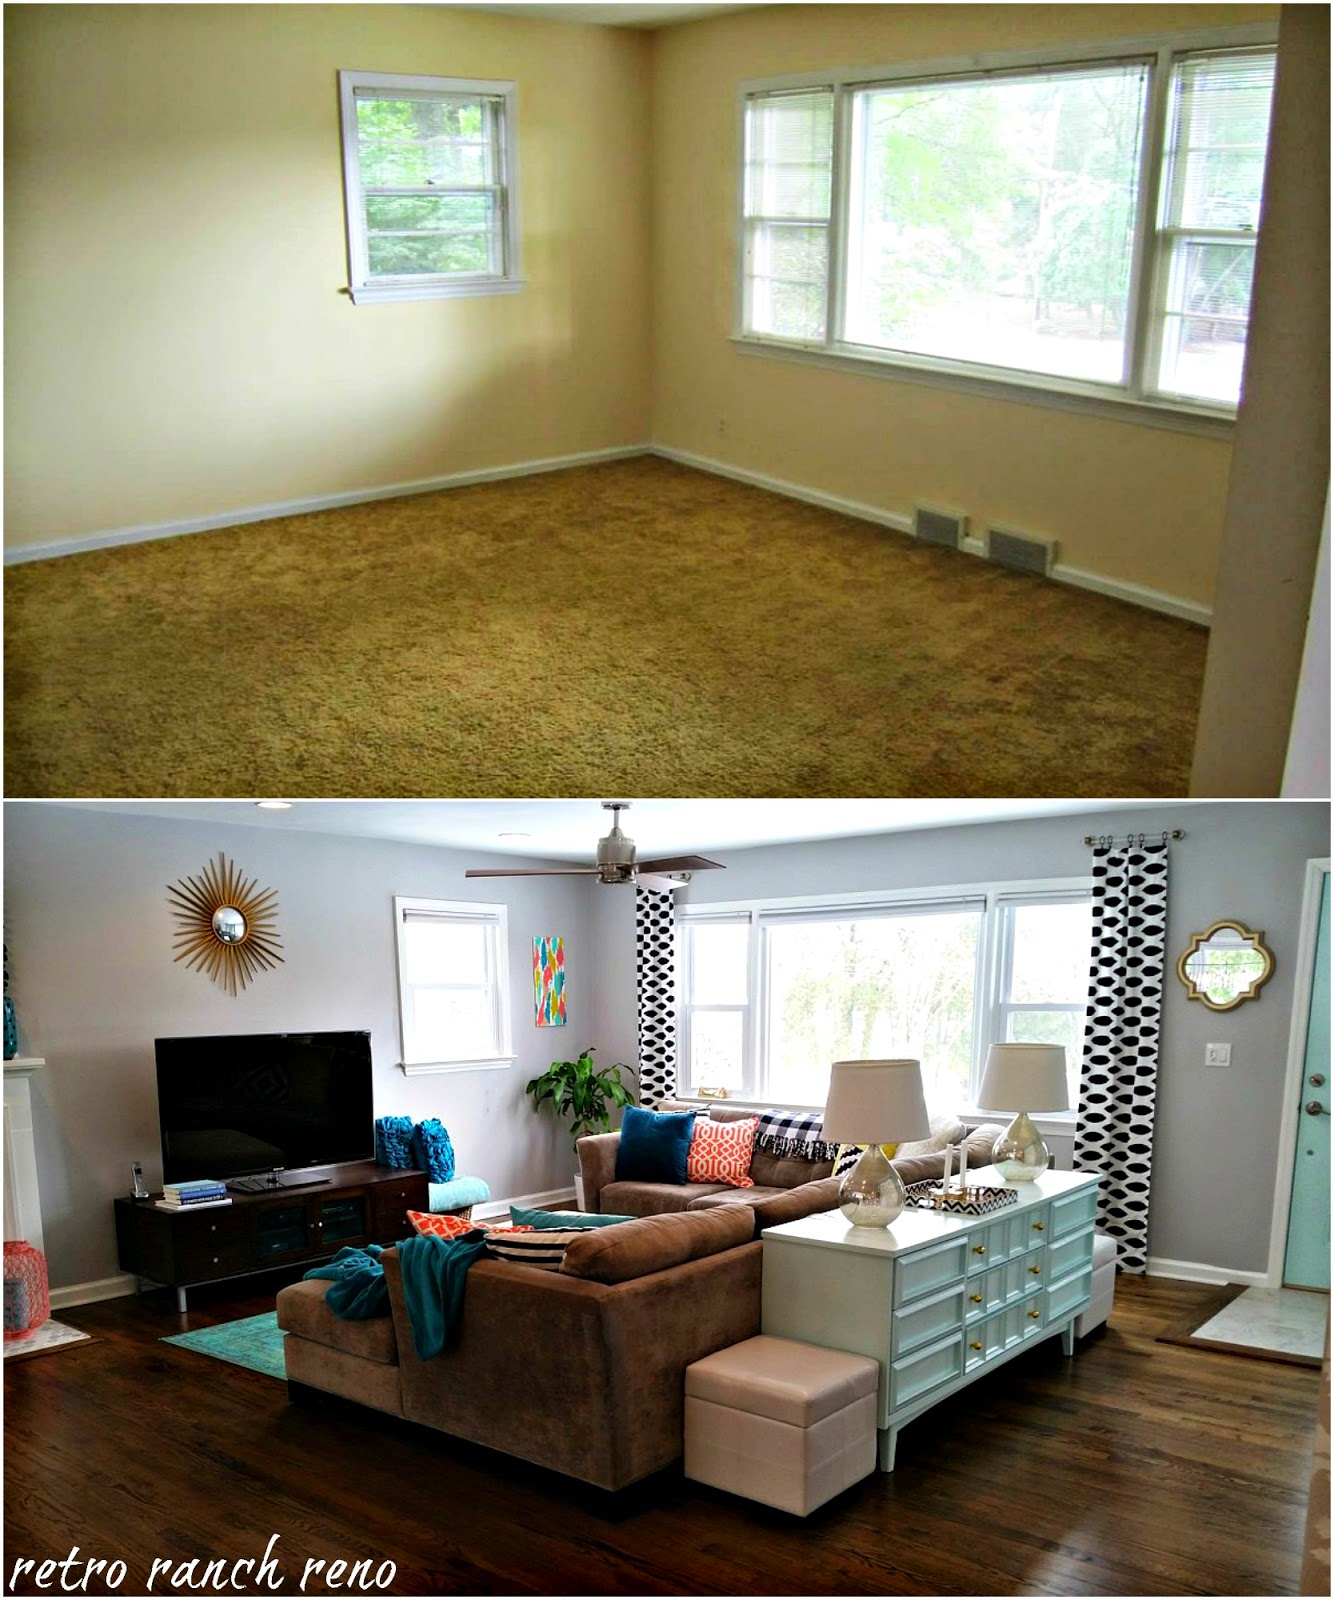 Retro Ranch Reno: Our Rancher: Before & After - The Living ...